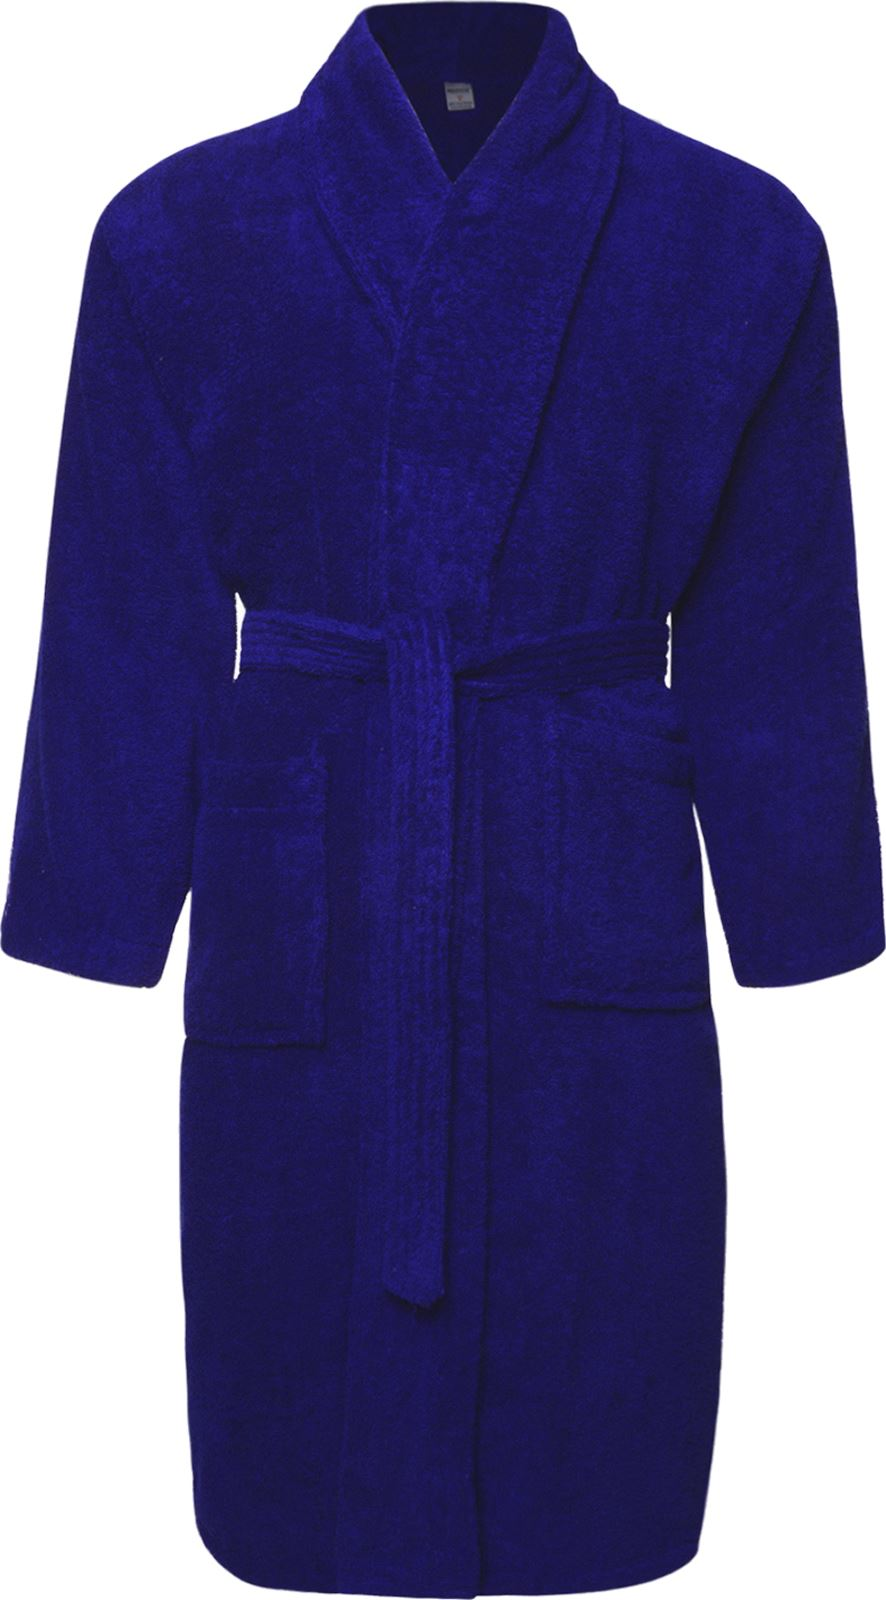 Details about Mens   Ladies Royal Blue 100% Cotton Terry Towelling Bathrobe  Dressing Gown Robe 788b563e3